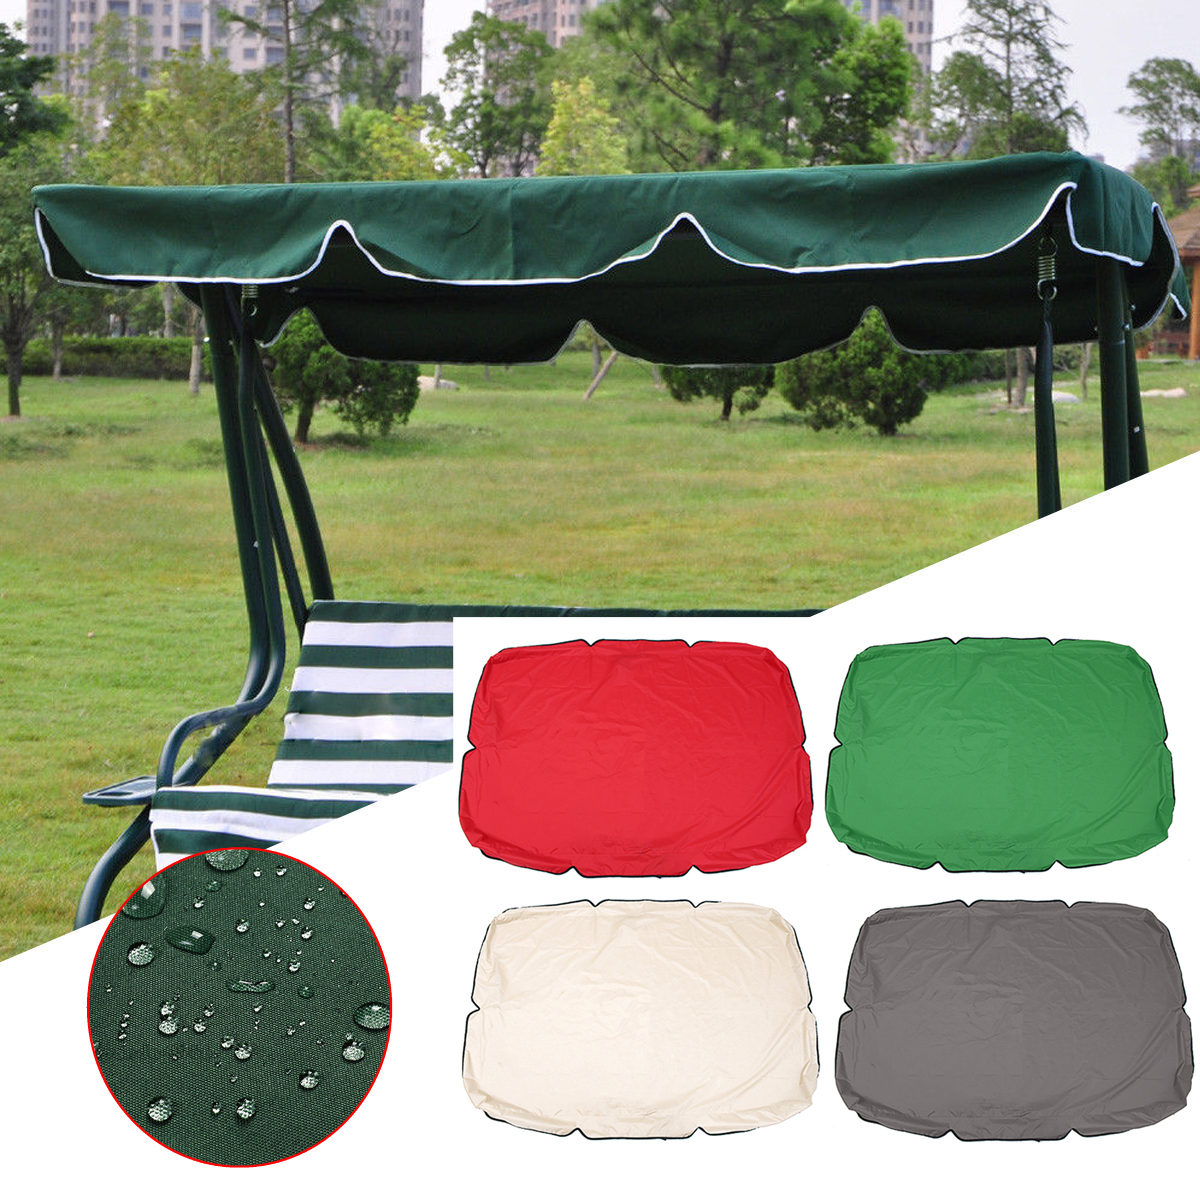 Summer Swing Top Cover Canopy Replacement Furniture Waterproof Cover for Garden Courtyard Outdoor Swing Chair Hammock Canopy Swing Chair Awning